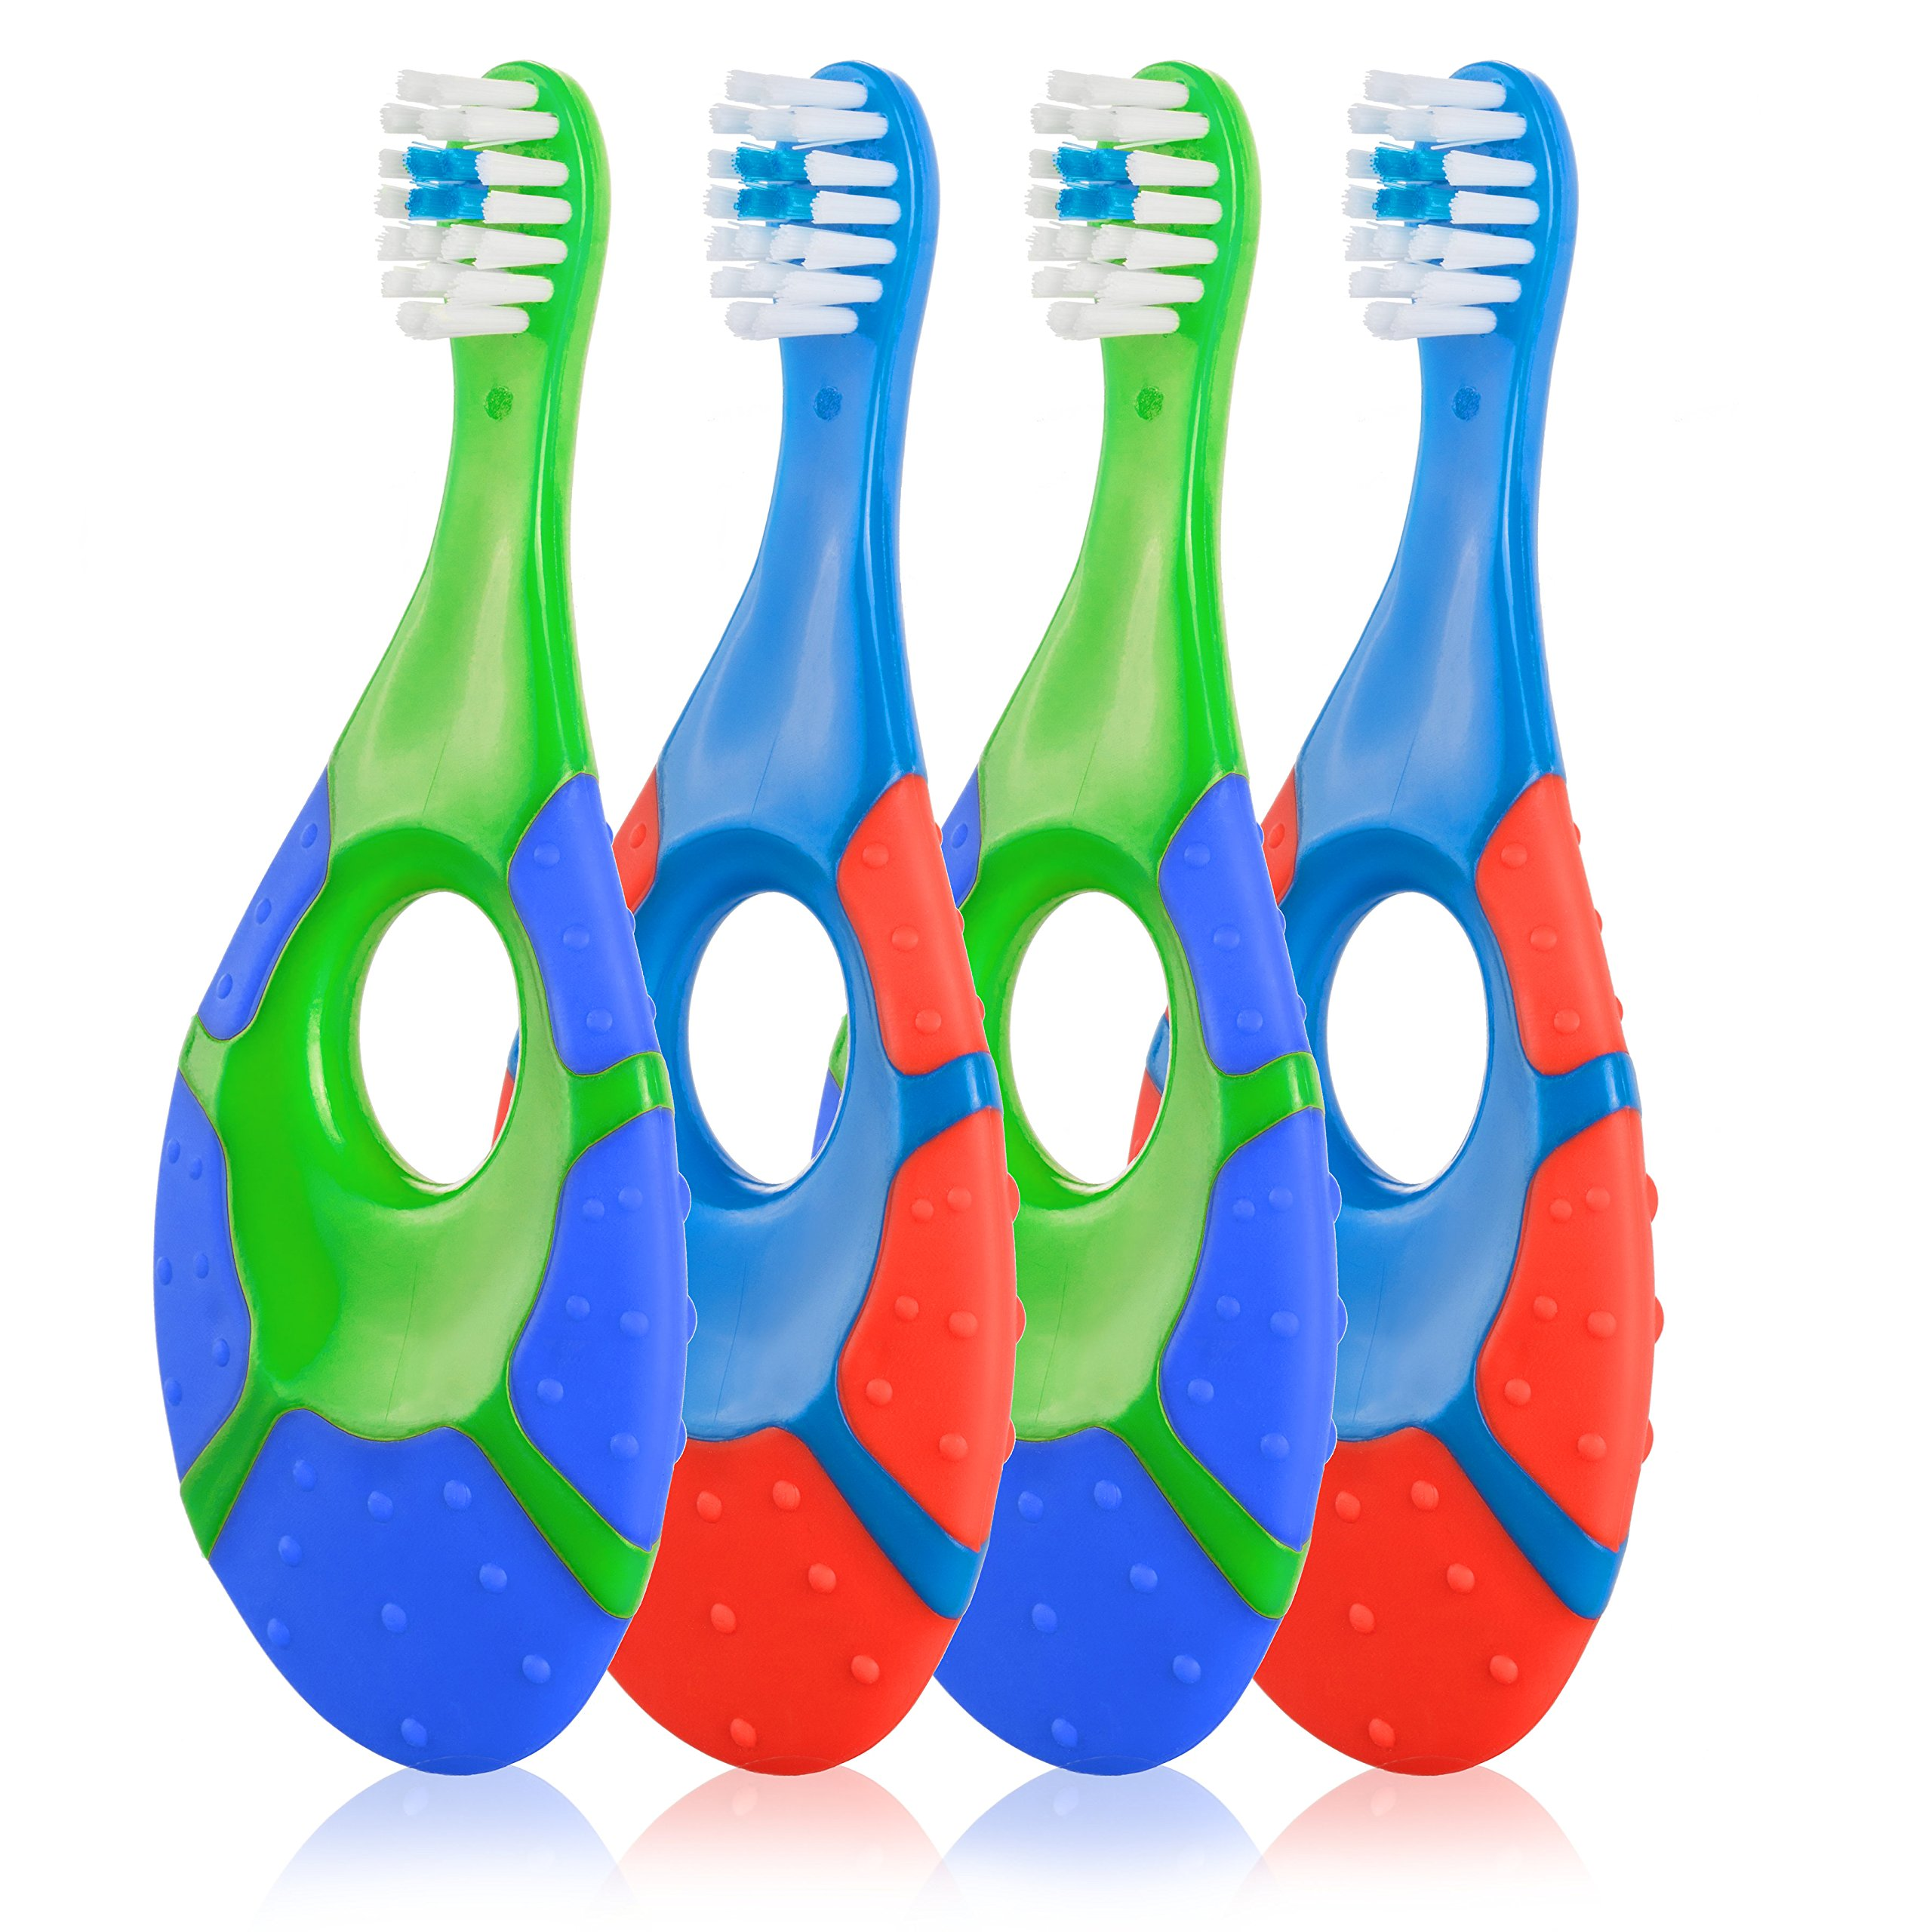 Baby Infant to Toddler Teething Toothbrush - Farber Baby - BPA Free with Gum Massaging Finger Handle and Soft Bristles, 0-2 Years (4 Pack) - Boy Pack